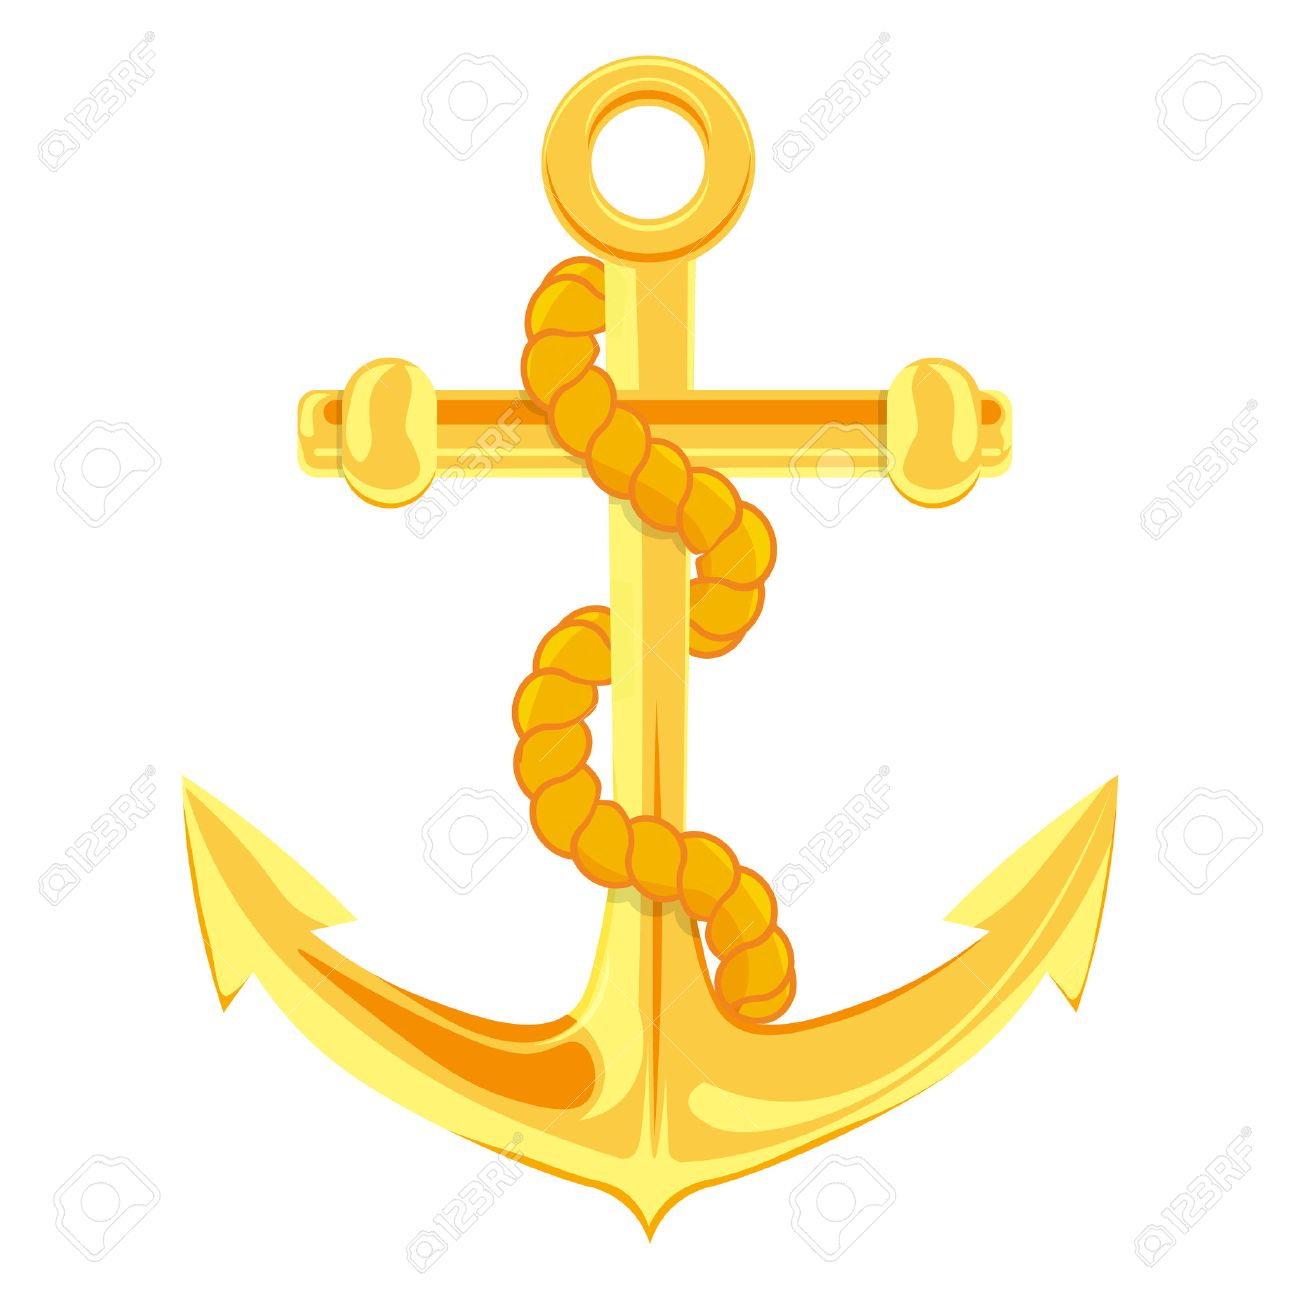 Gold Anchor Vector Illustration Isolated On A White Background Stock